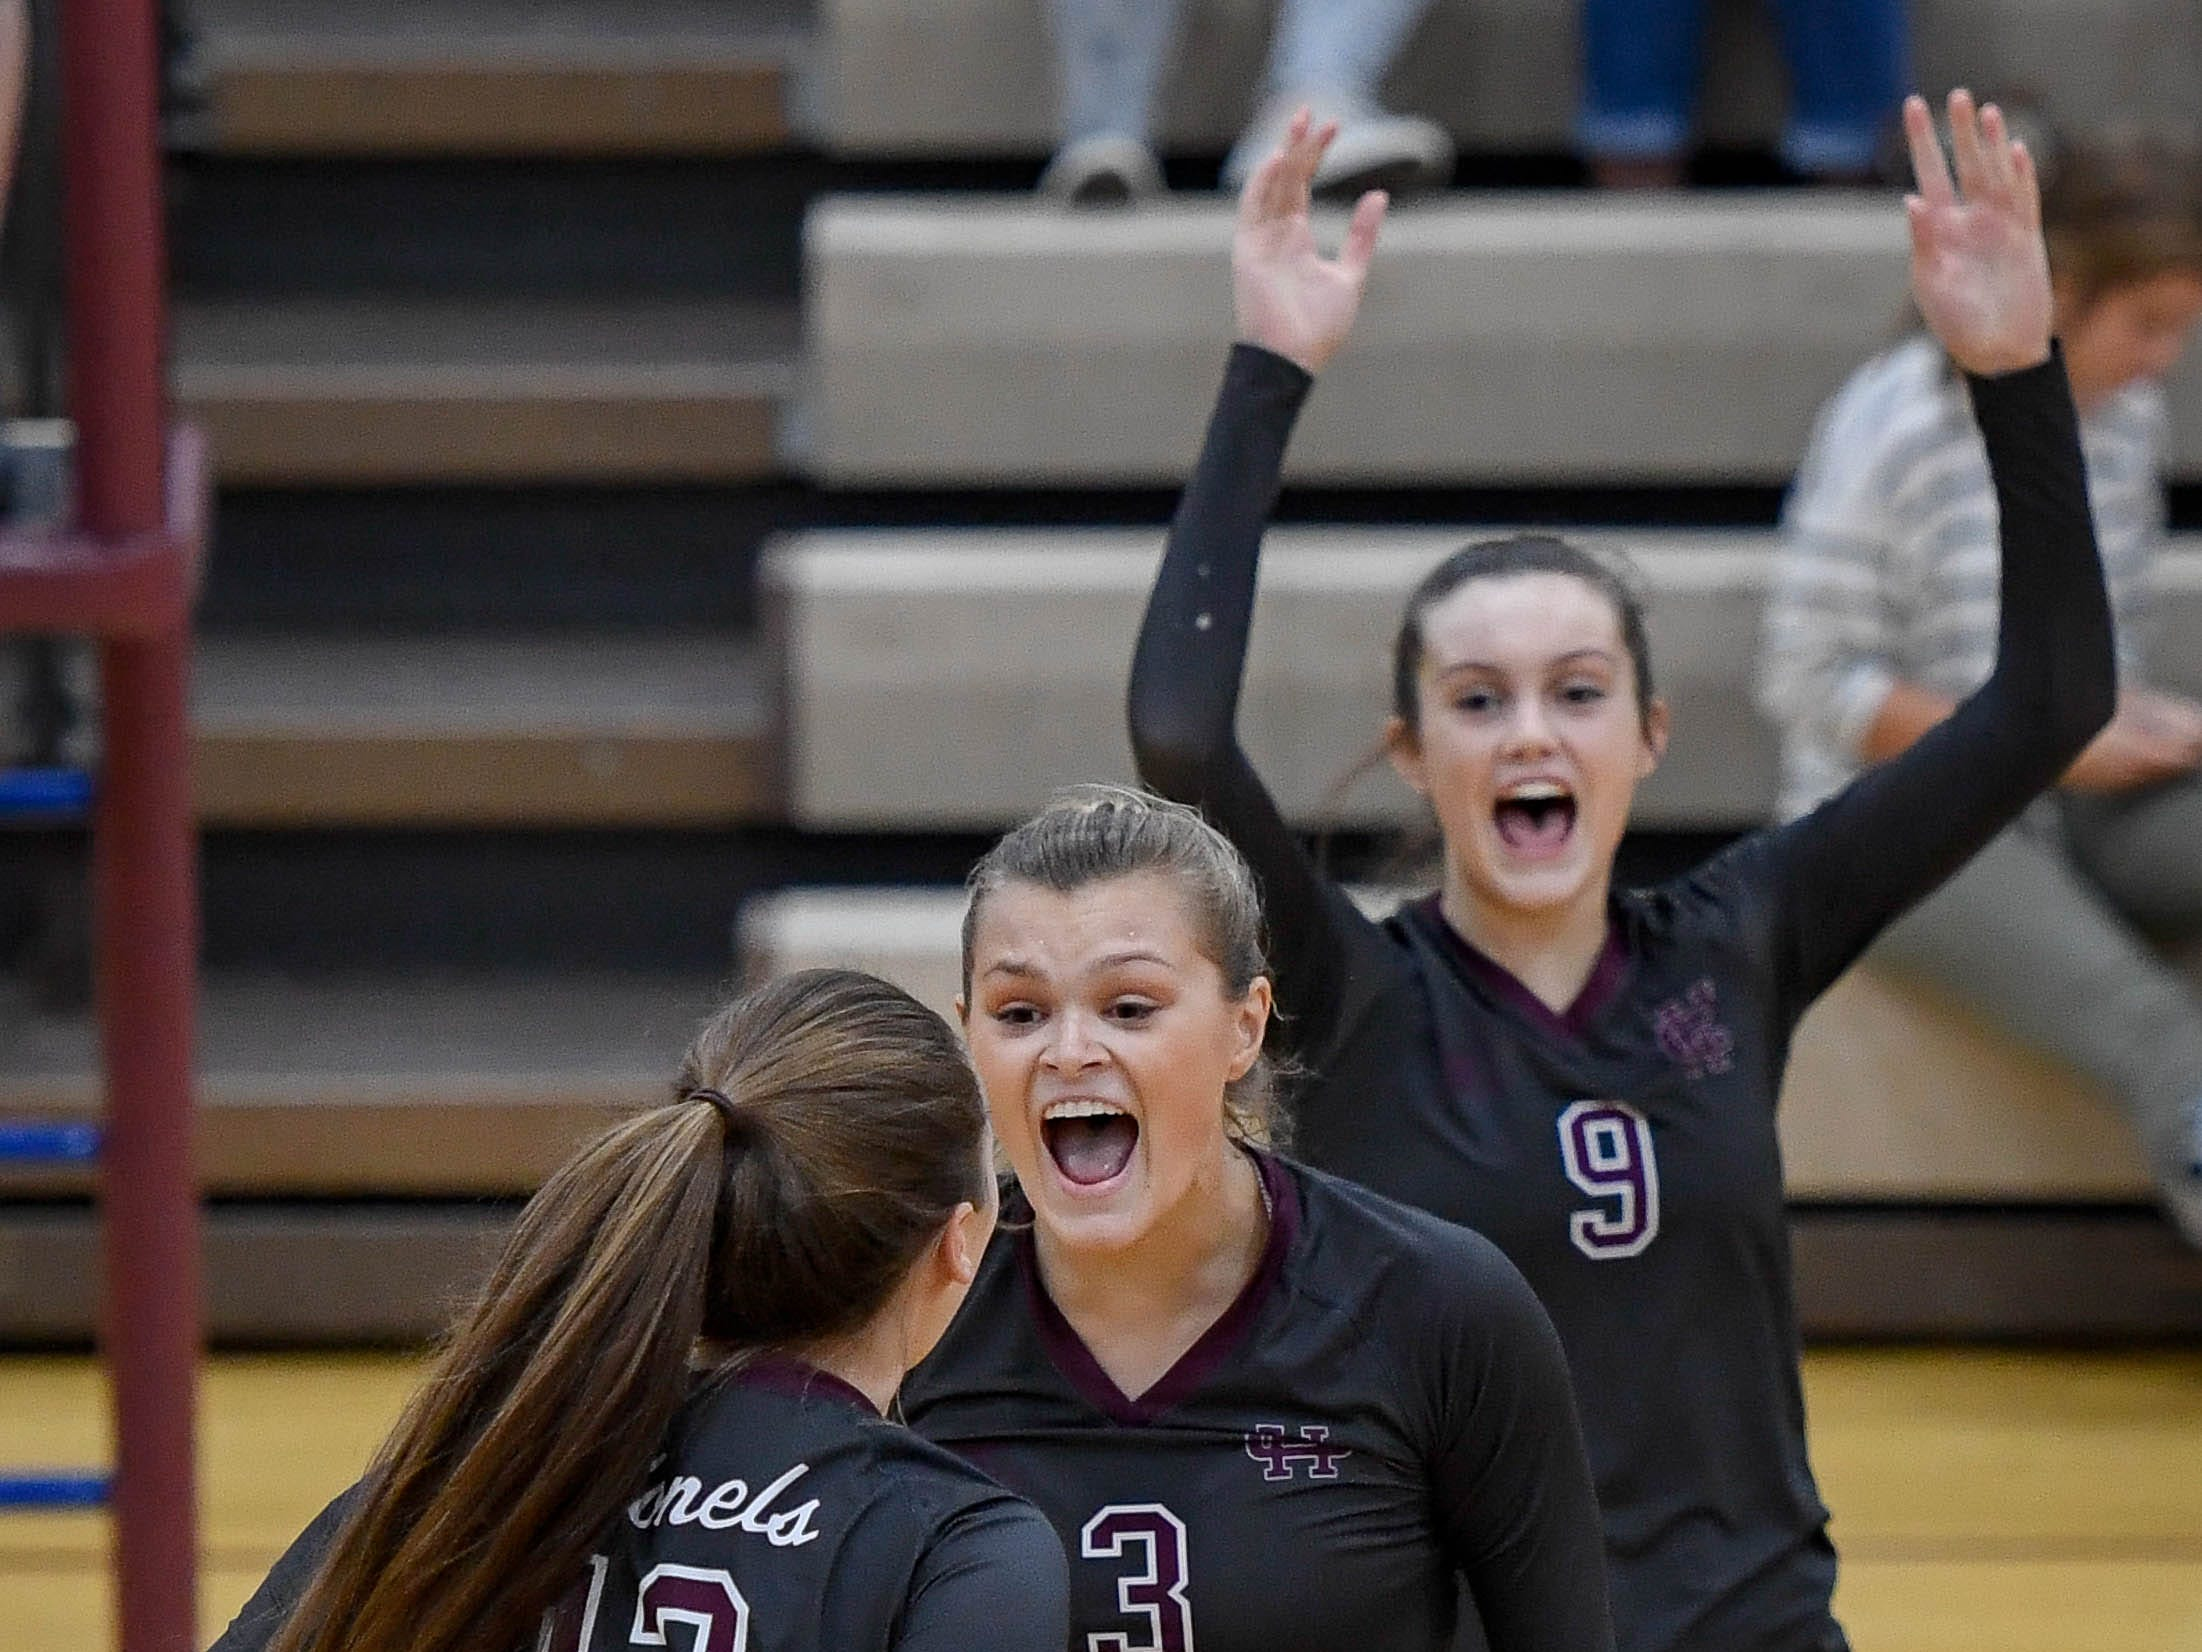 Henderson's Athena Sumner (13),  Hannah Watkins (3) and  Jordan Troutman (9) celebrate scoring a point as the Henderson County Lady Colonels play the Caldwell County Lady Tigers at Colonel Gym Thursday, October  4, 2018.